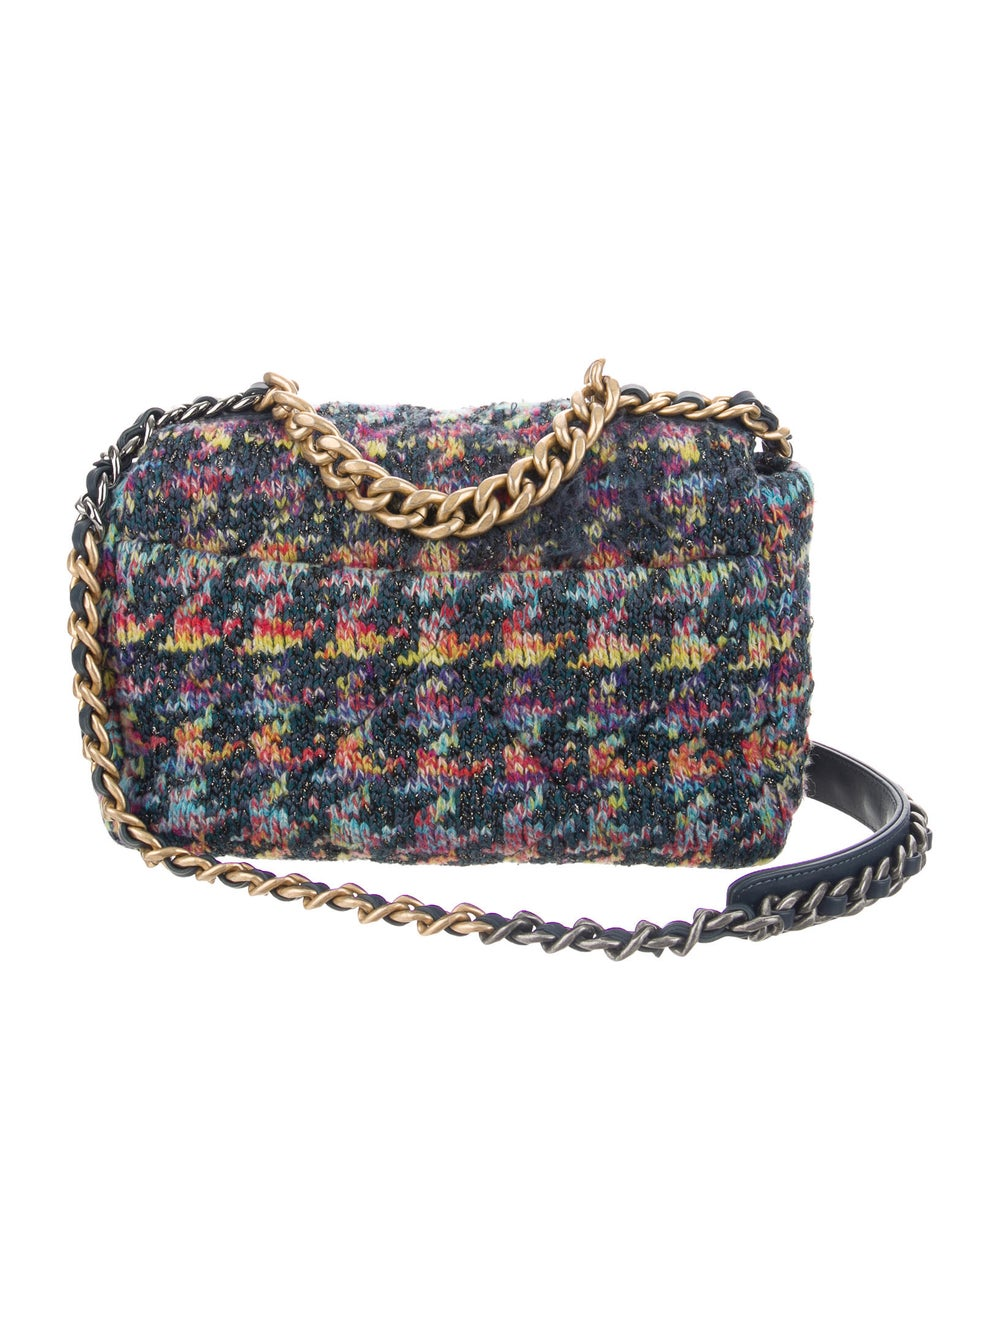 Chanel 2020 Medium Quilted Knit 19 Flap Bag Blue - image 4